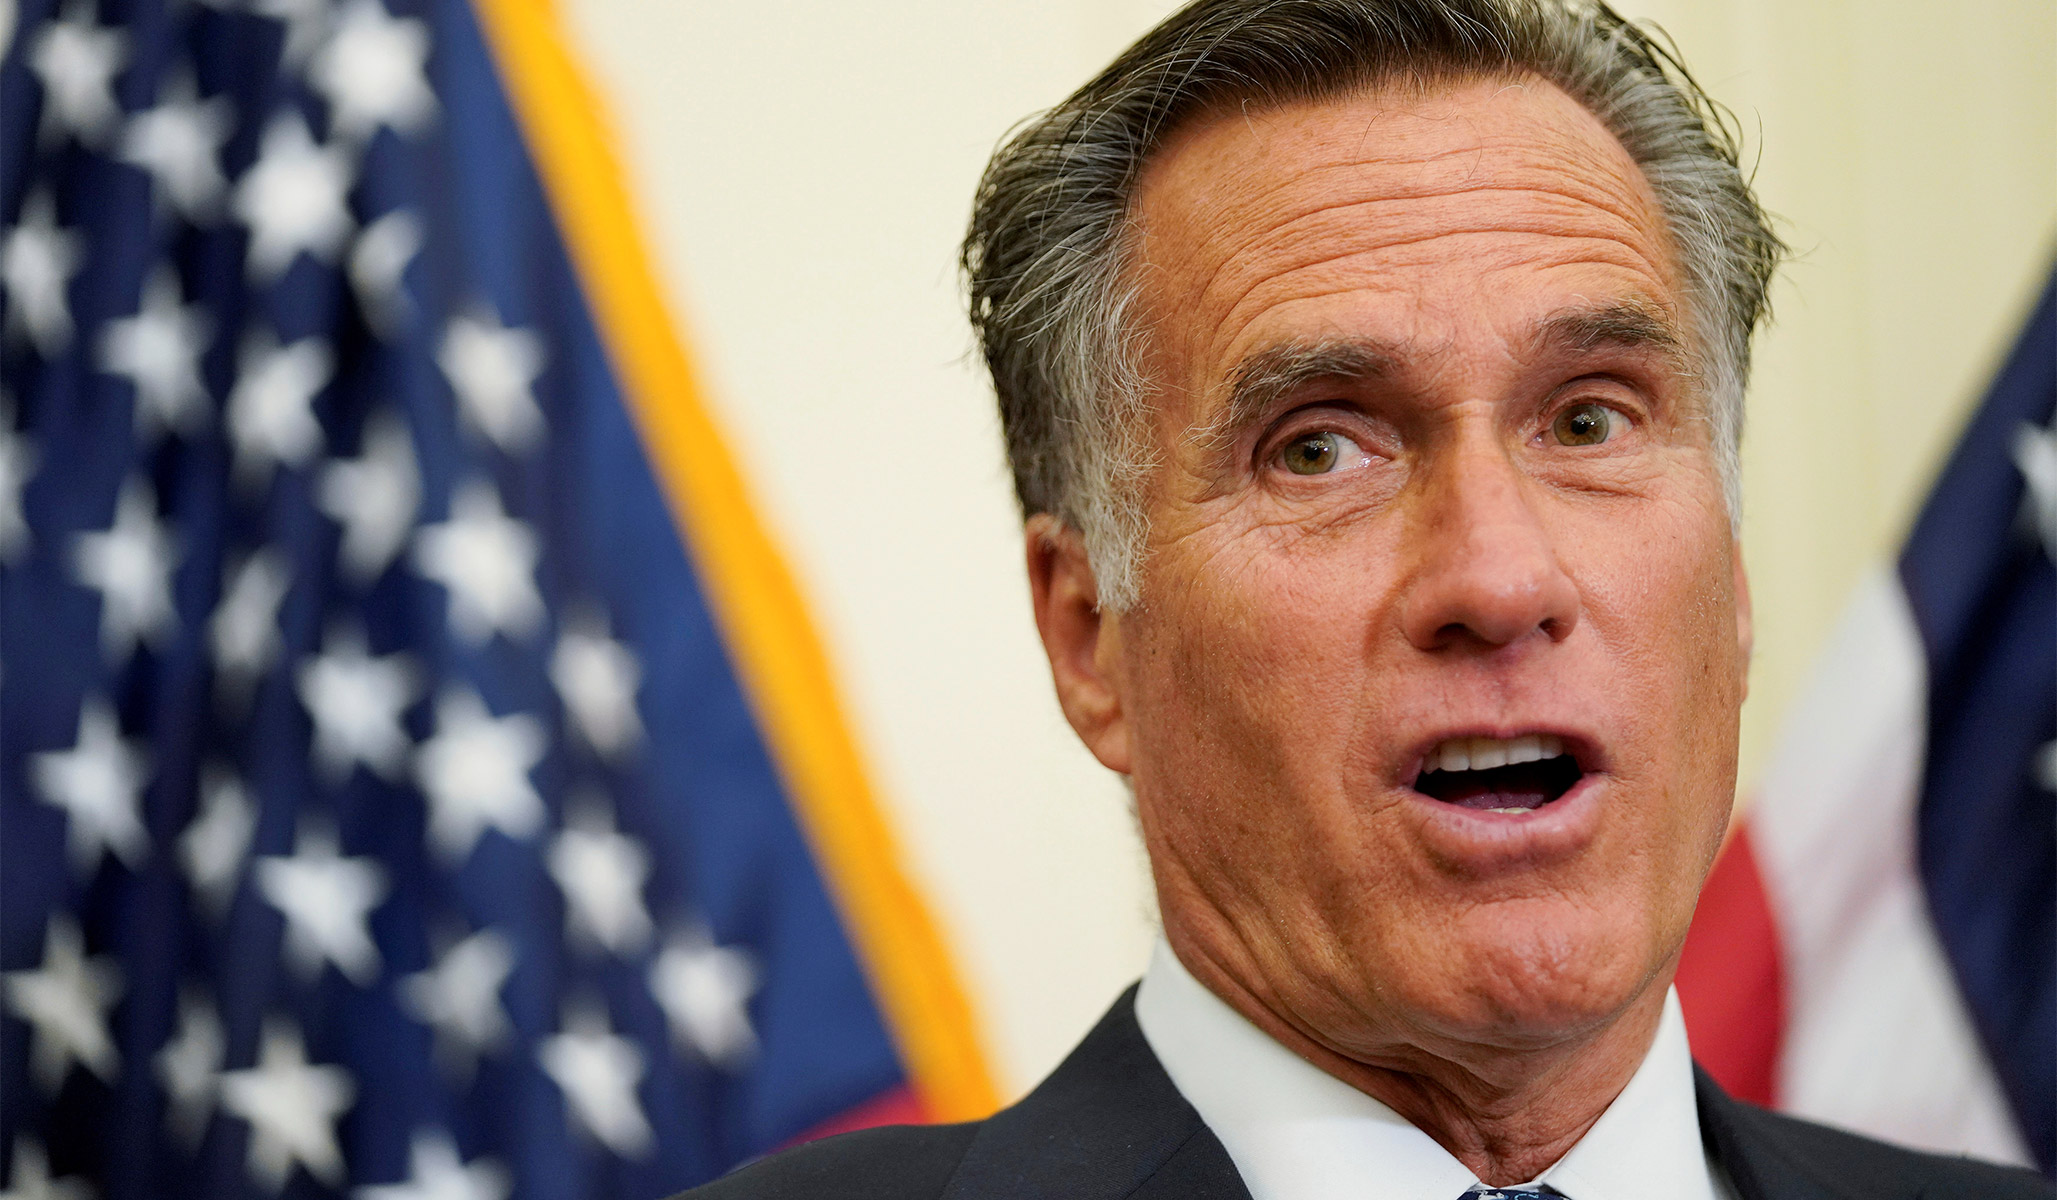 Romney Blames Trump Admin. for Syria Chaos: 'This Is Not a Surprise'